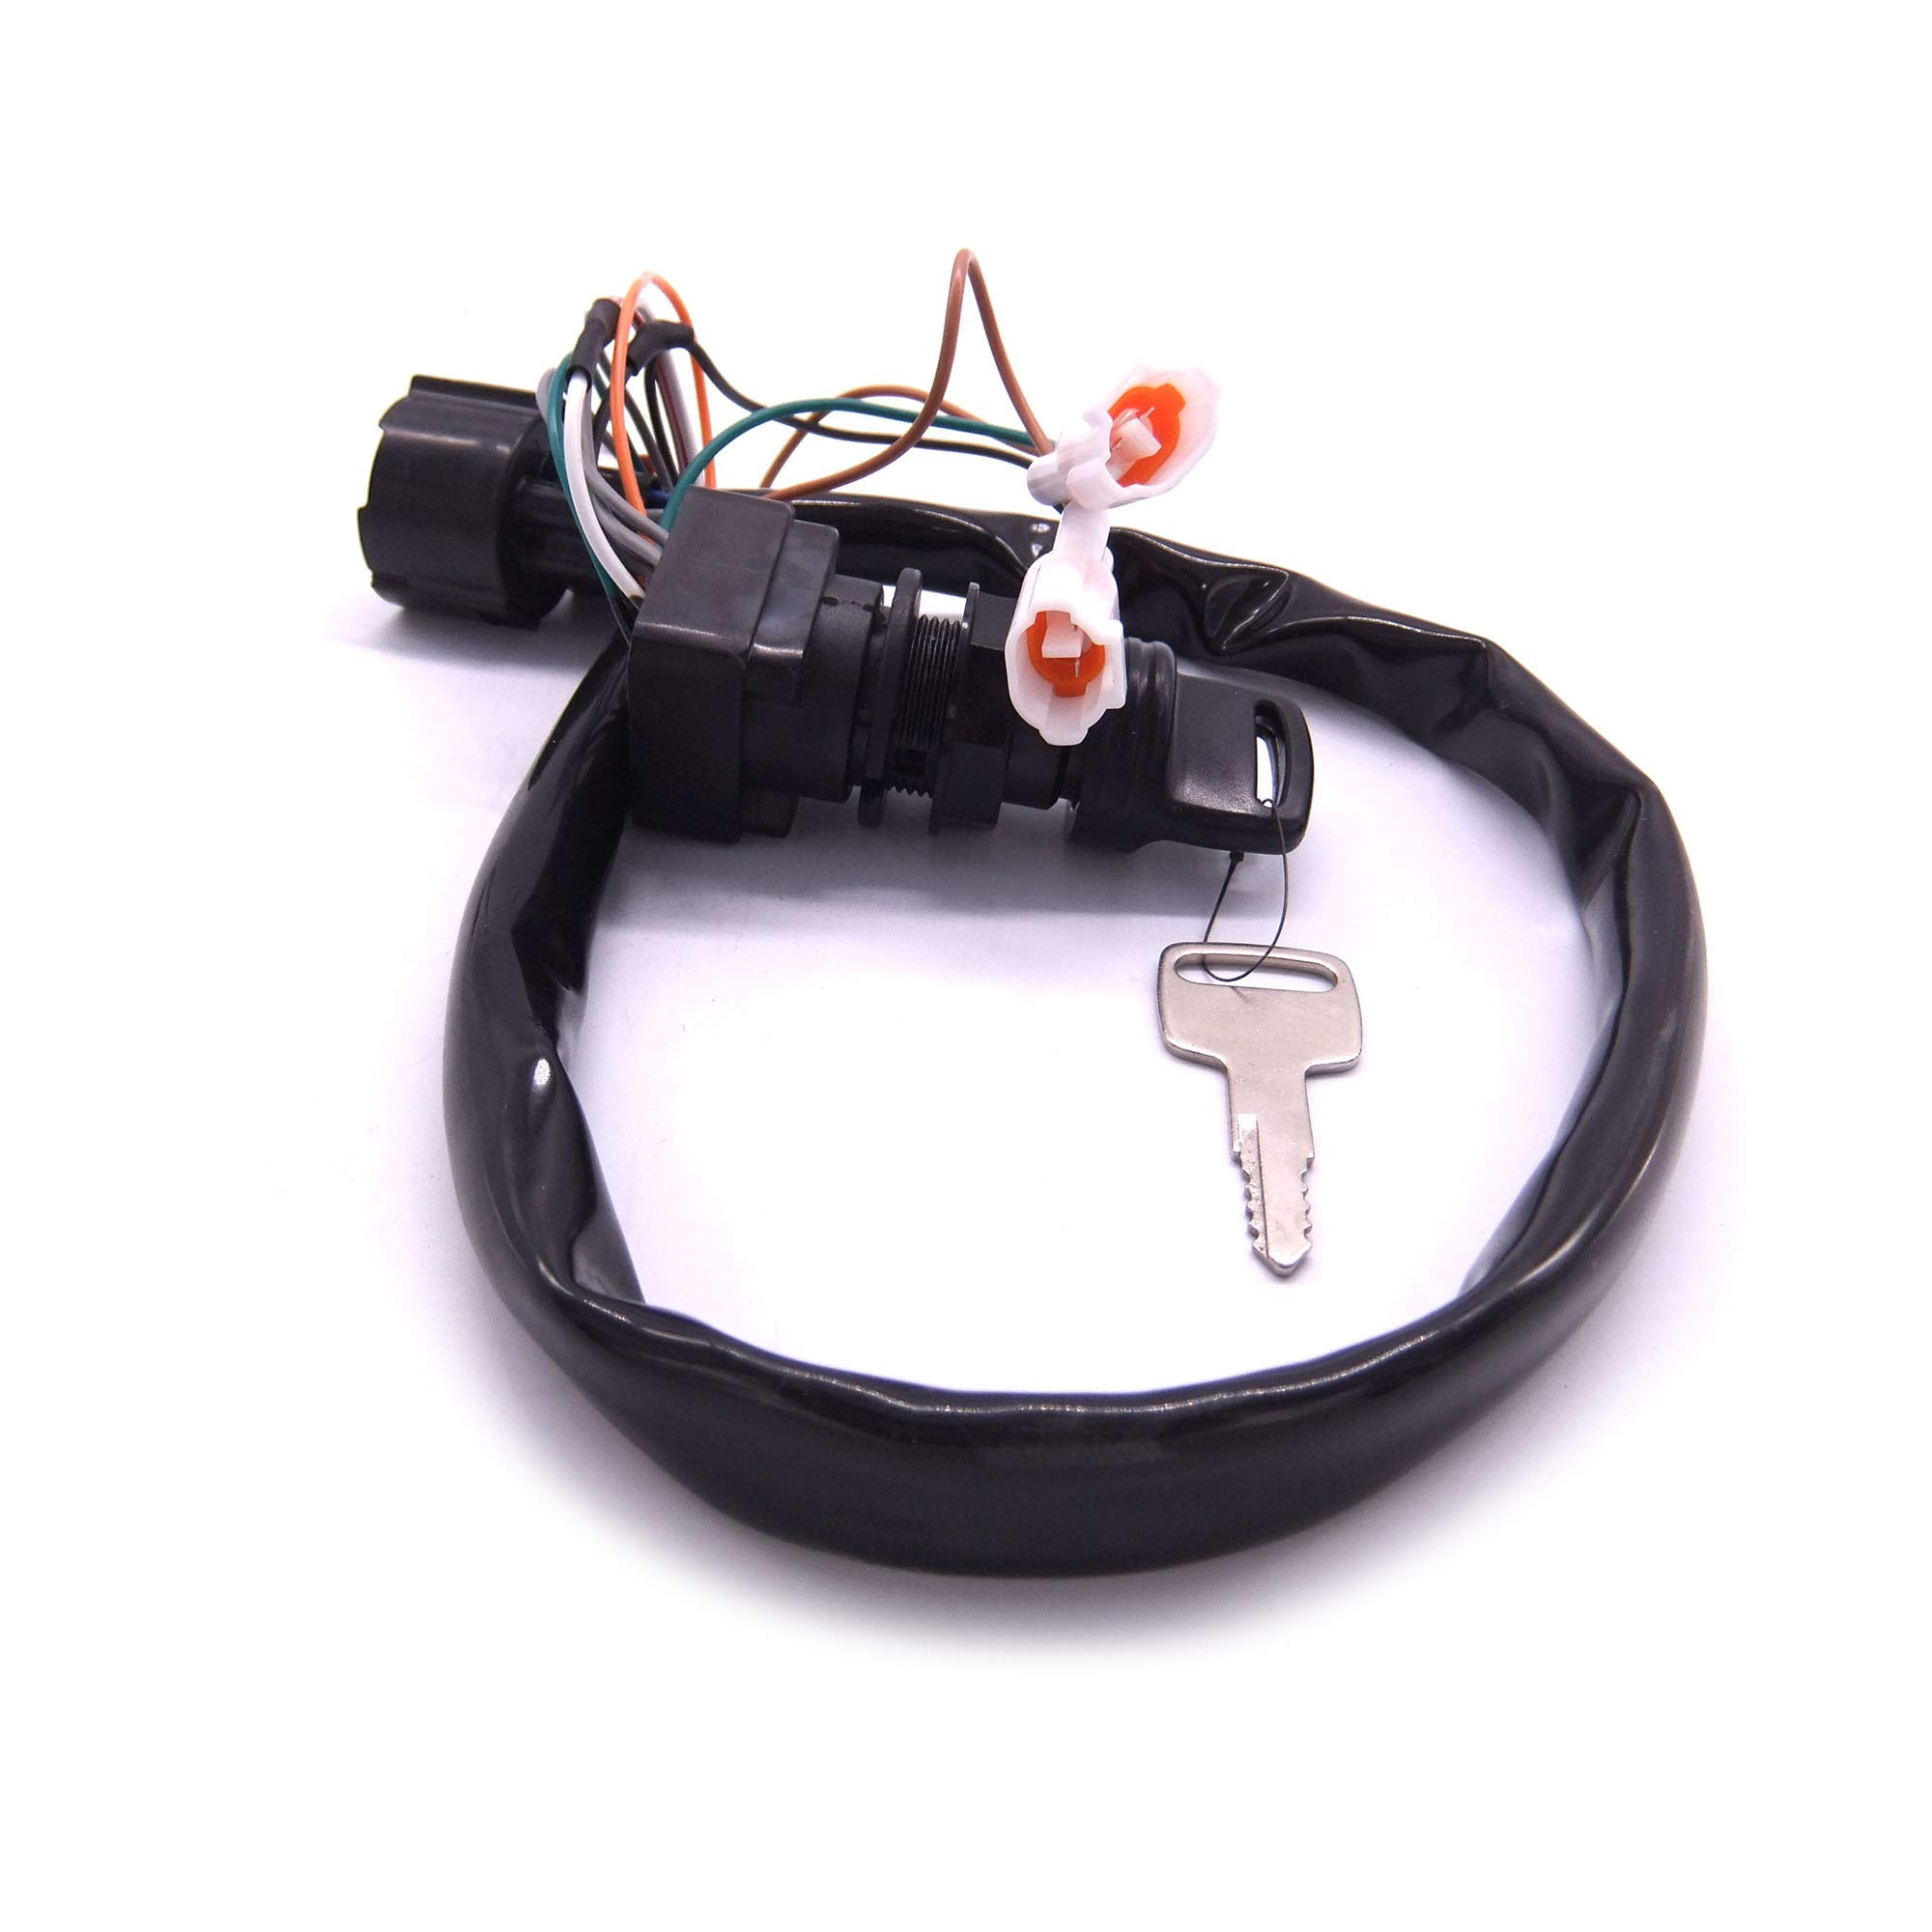 SouthMarine 37110-93J00 37110-93J01 Boat Motor Ignition Switch Assembly for Suzuki Outboard Motor by SouthMarine (Image #6)